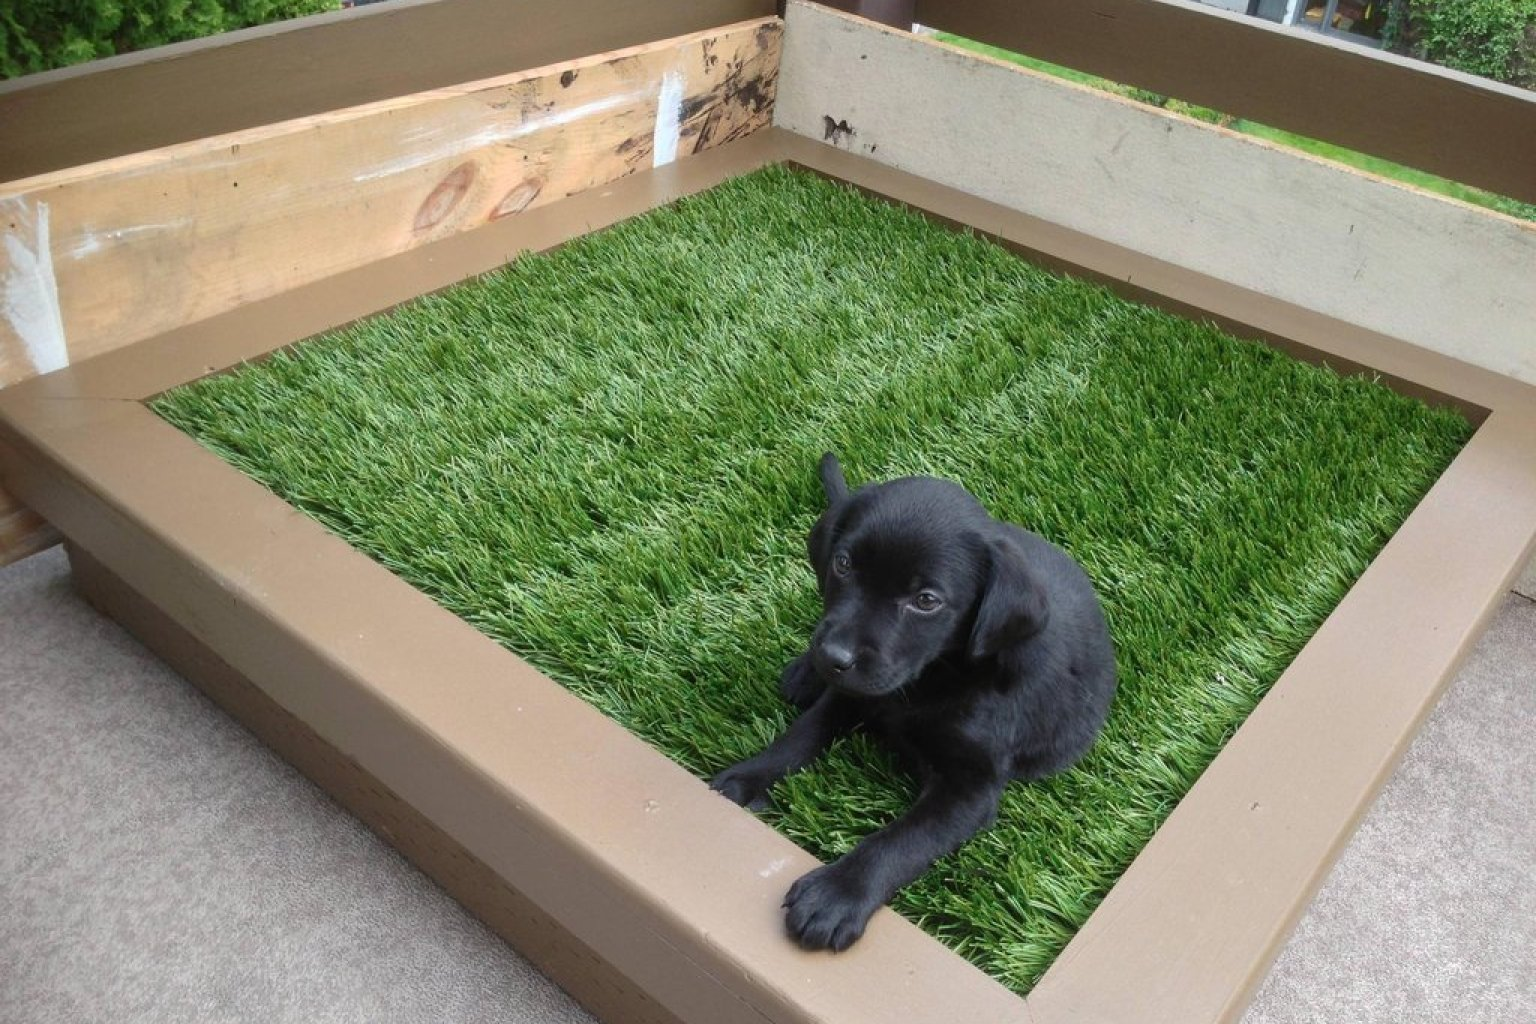 DIY Porch Potty Is The Ultimate Solution For City Dogs Or Lazy Pet Owners  (PHOTOS) | HuffPost